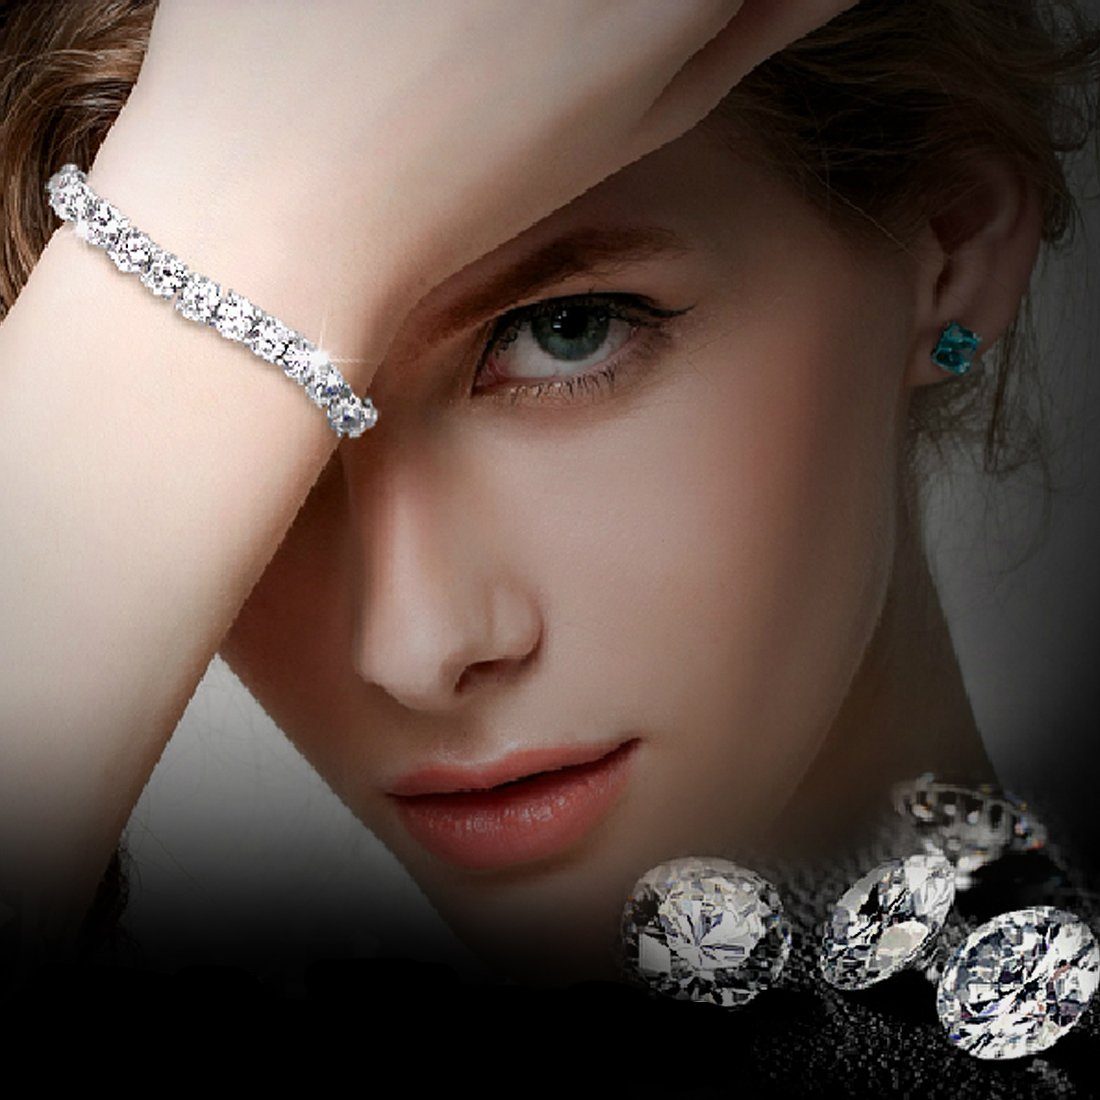 Neoglory Jewelry S925 Silver White Round-Cut Cubic Zirconia Classic Tennis Bracelet 7.7Inch by Neoglory (Image #2)